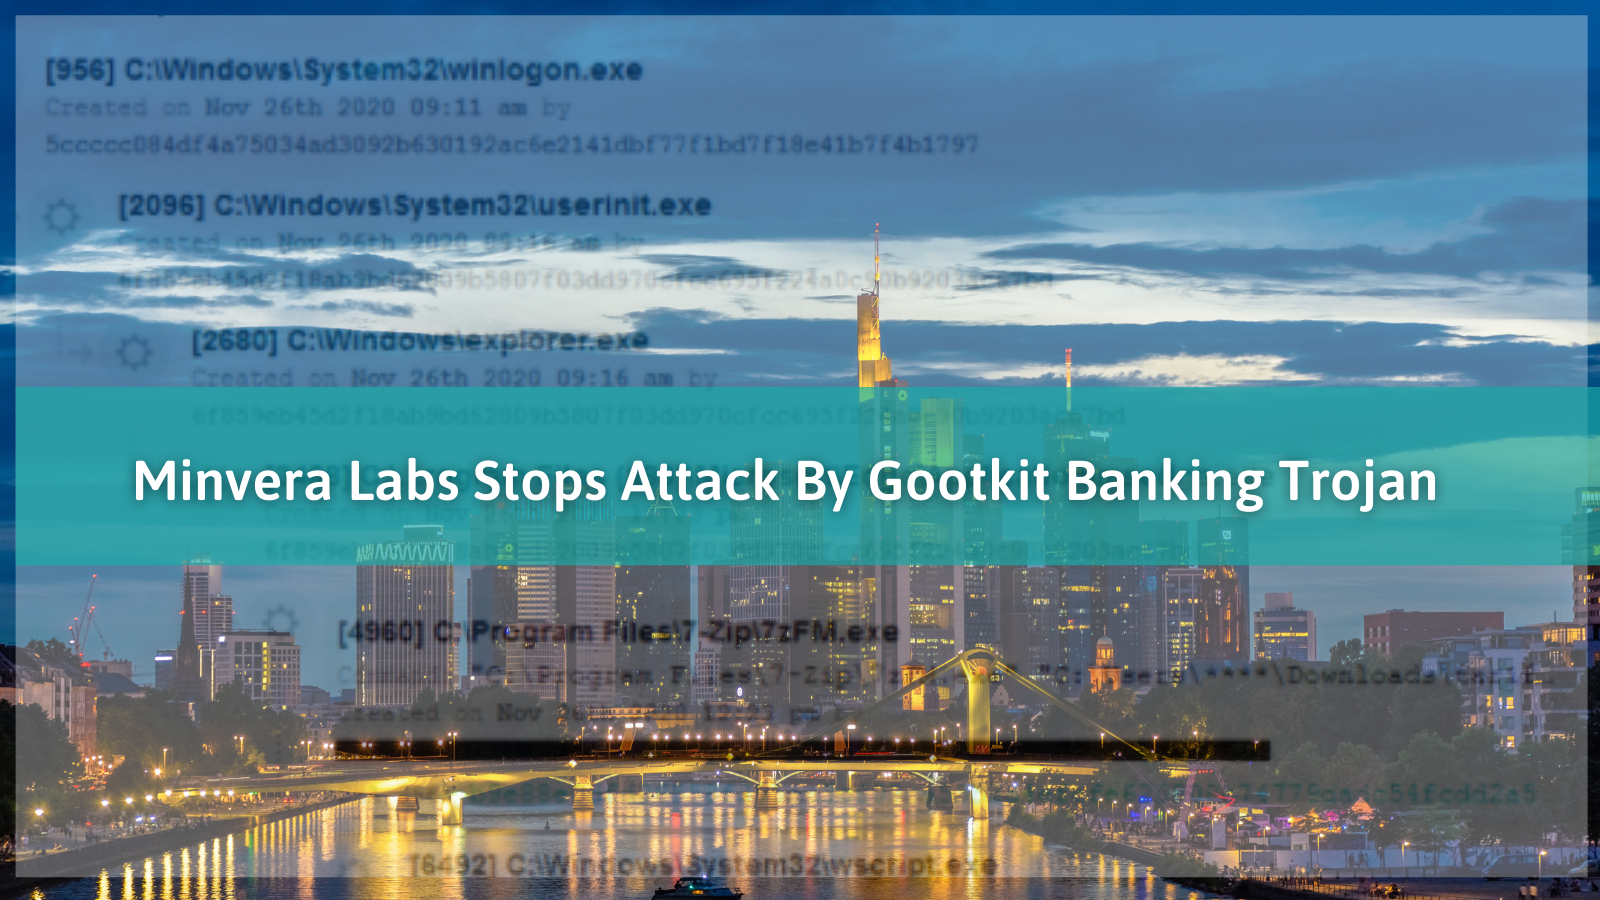 Minerva Labs Stops An Attack By Gootkit Banking Trojan